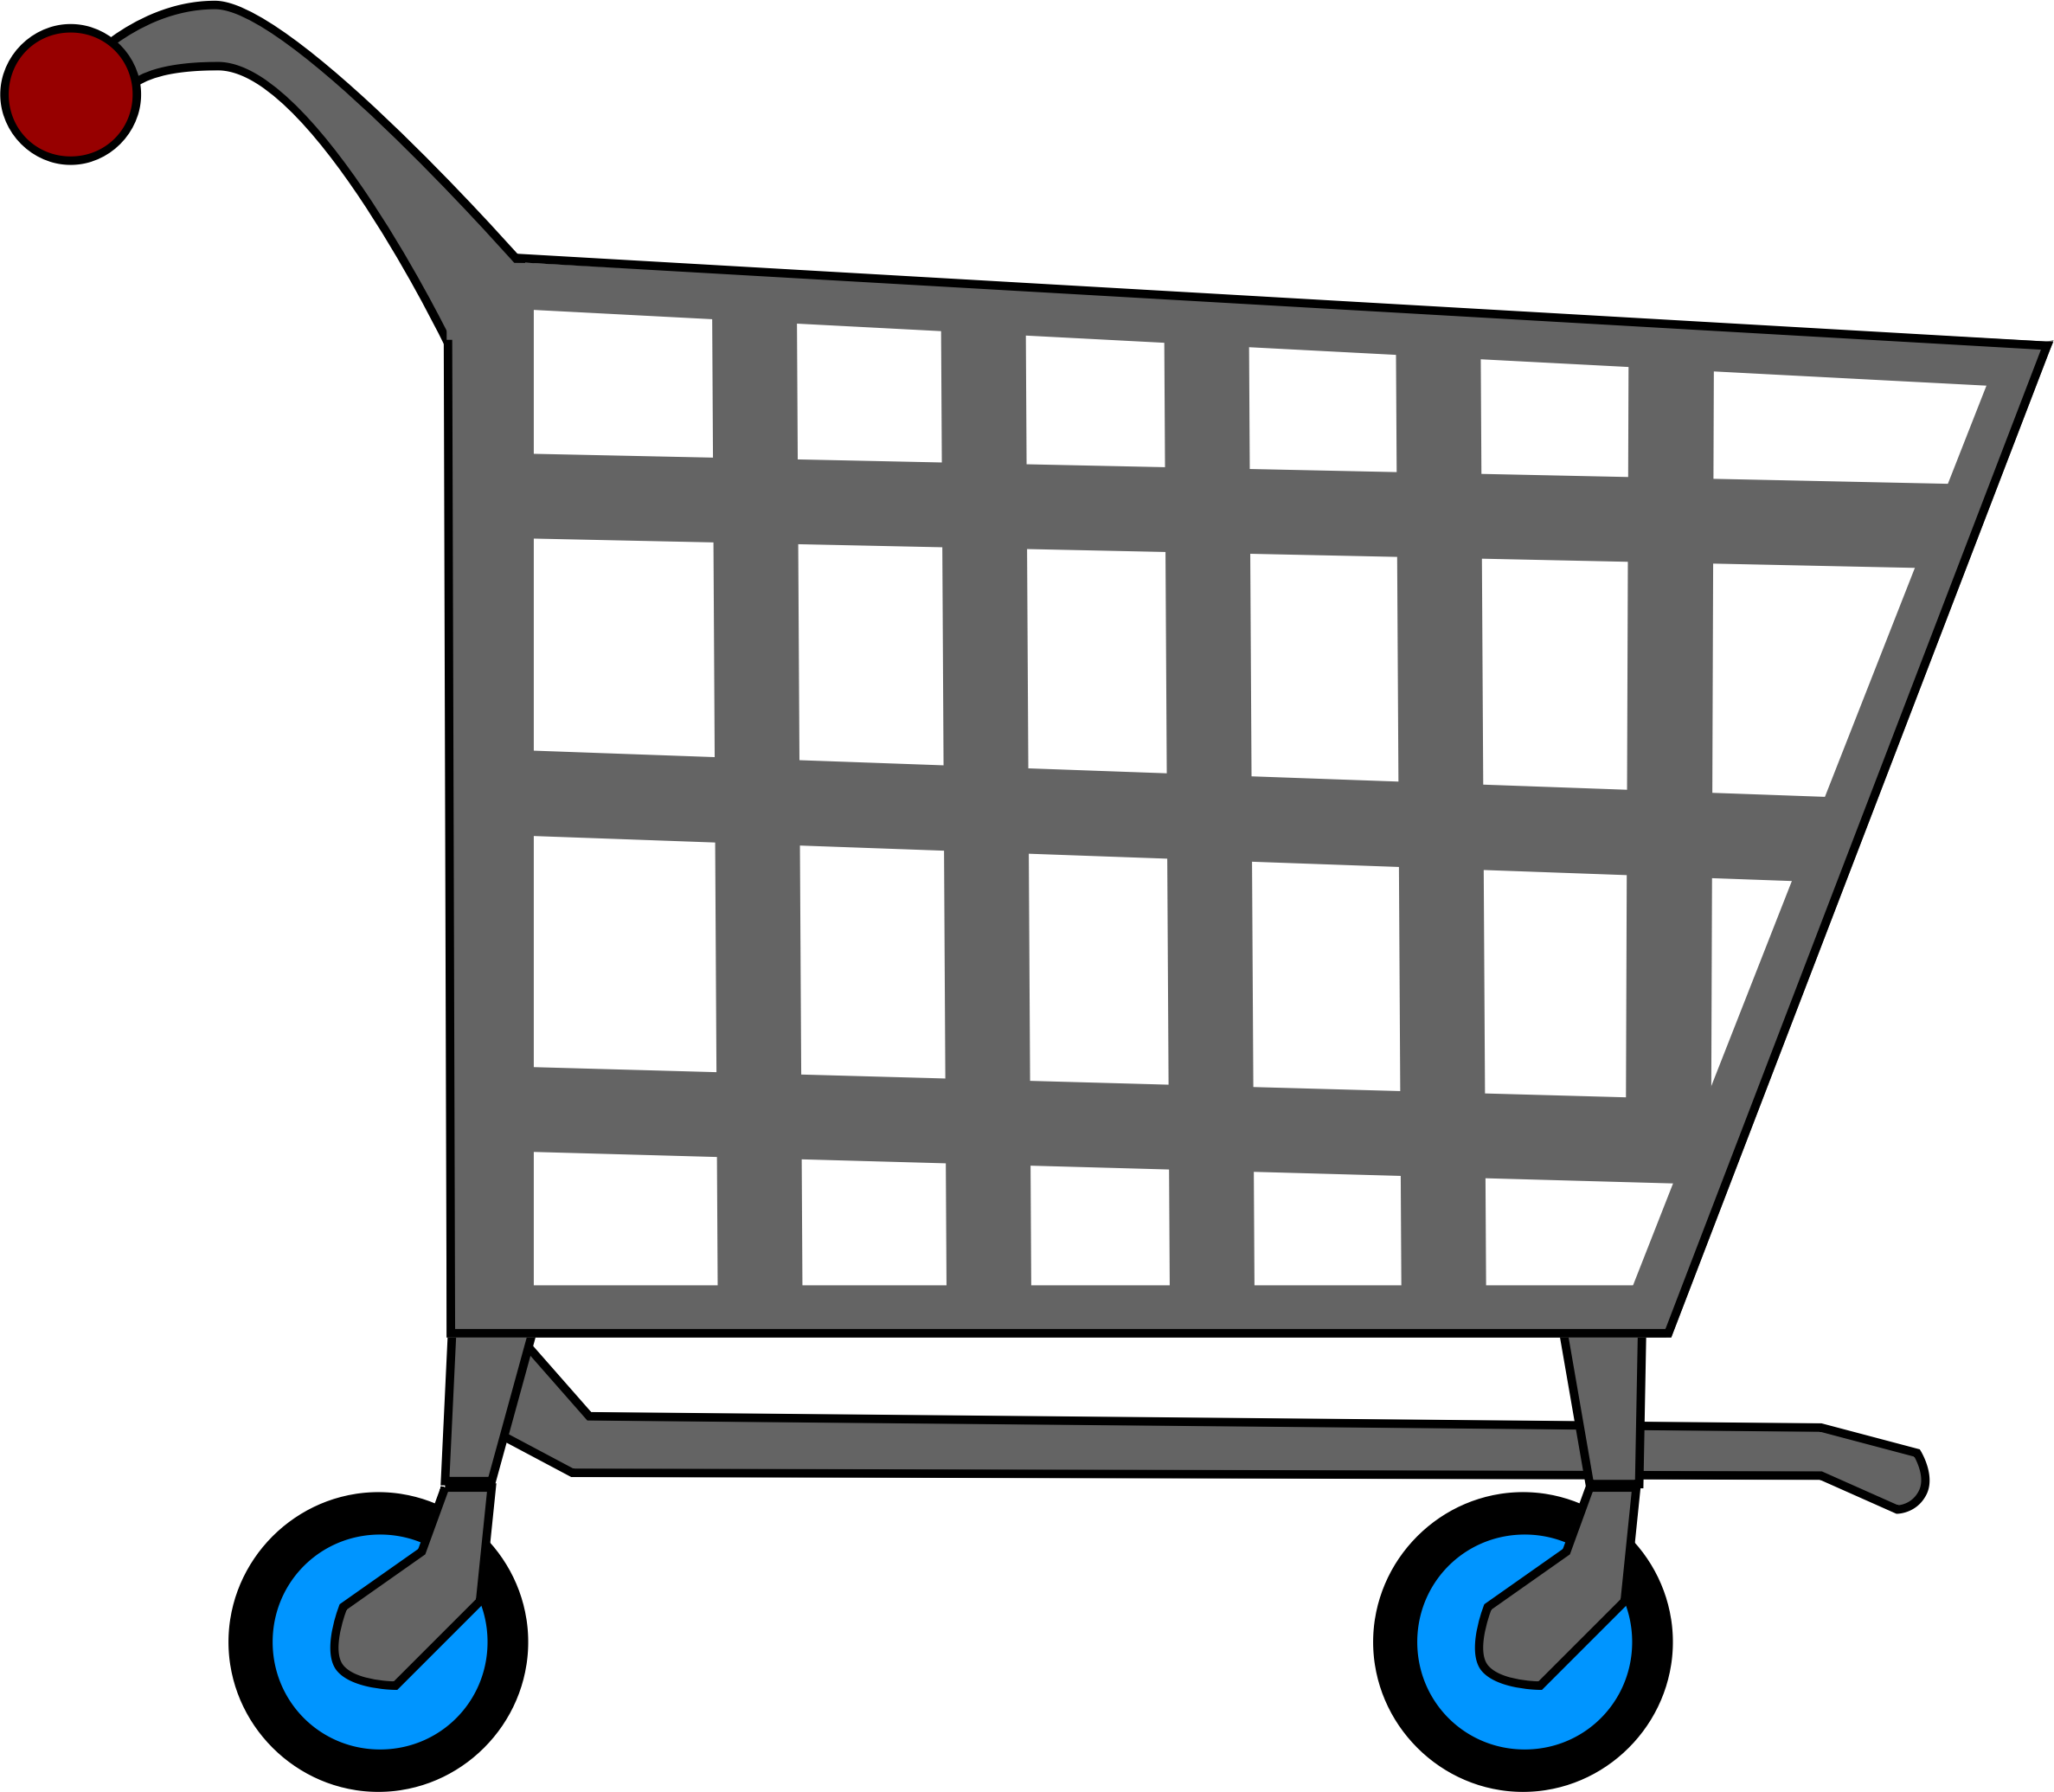 Wagon clipart trolley. Shopping cart wallpapers with